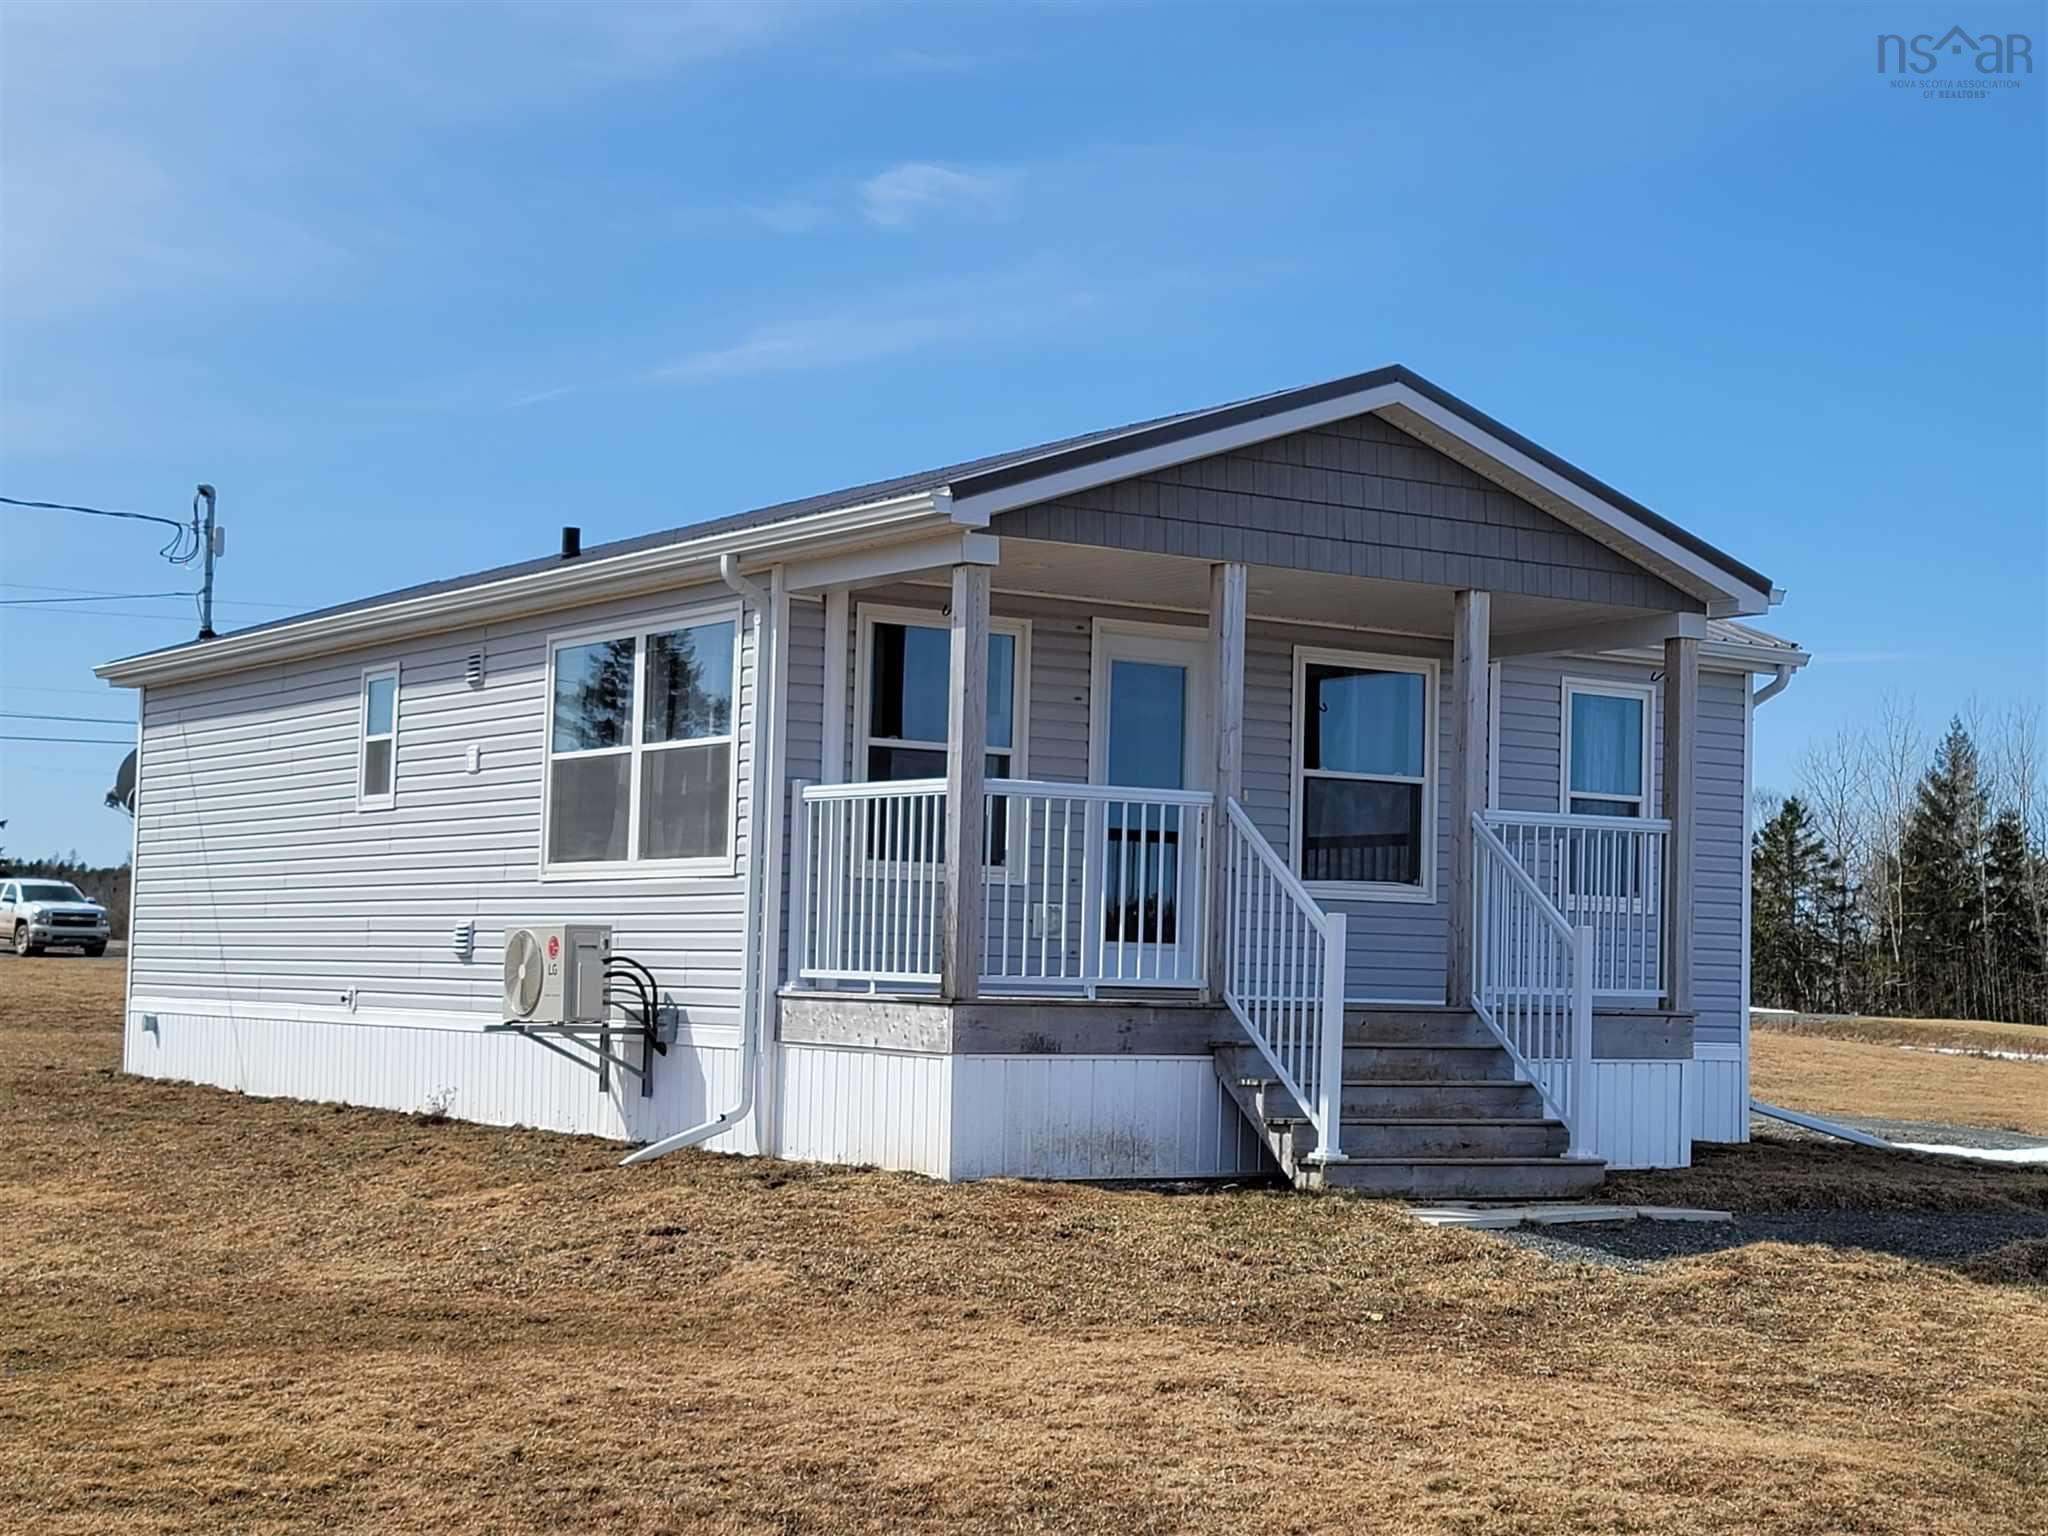 5125 6 Highway, Toney River, Pictou, NS, United States B0K 1R0, 3 Bedrooms Bedrooms, ,1 BathroomBathrooms,Residential,For Sale,5125 6 Highway,202105561